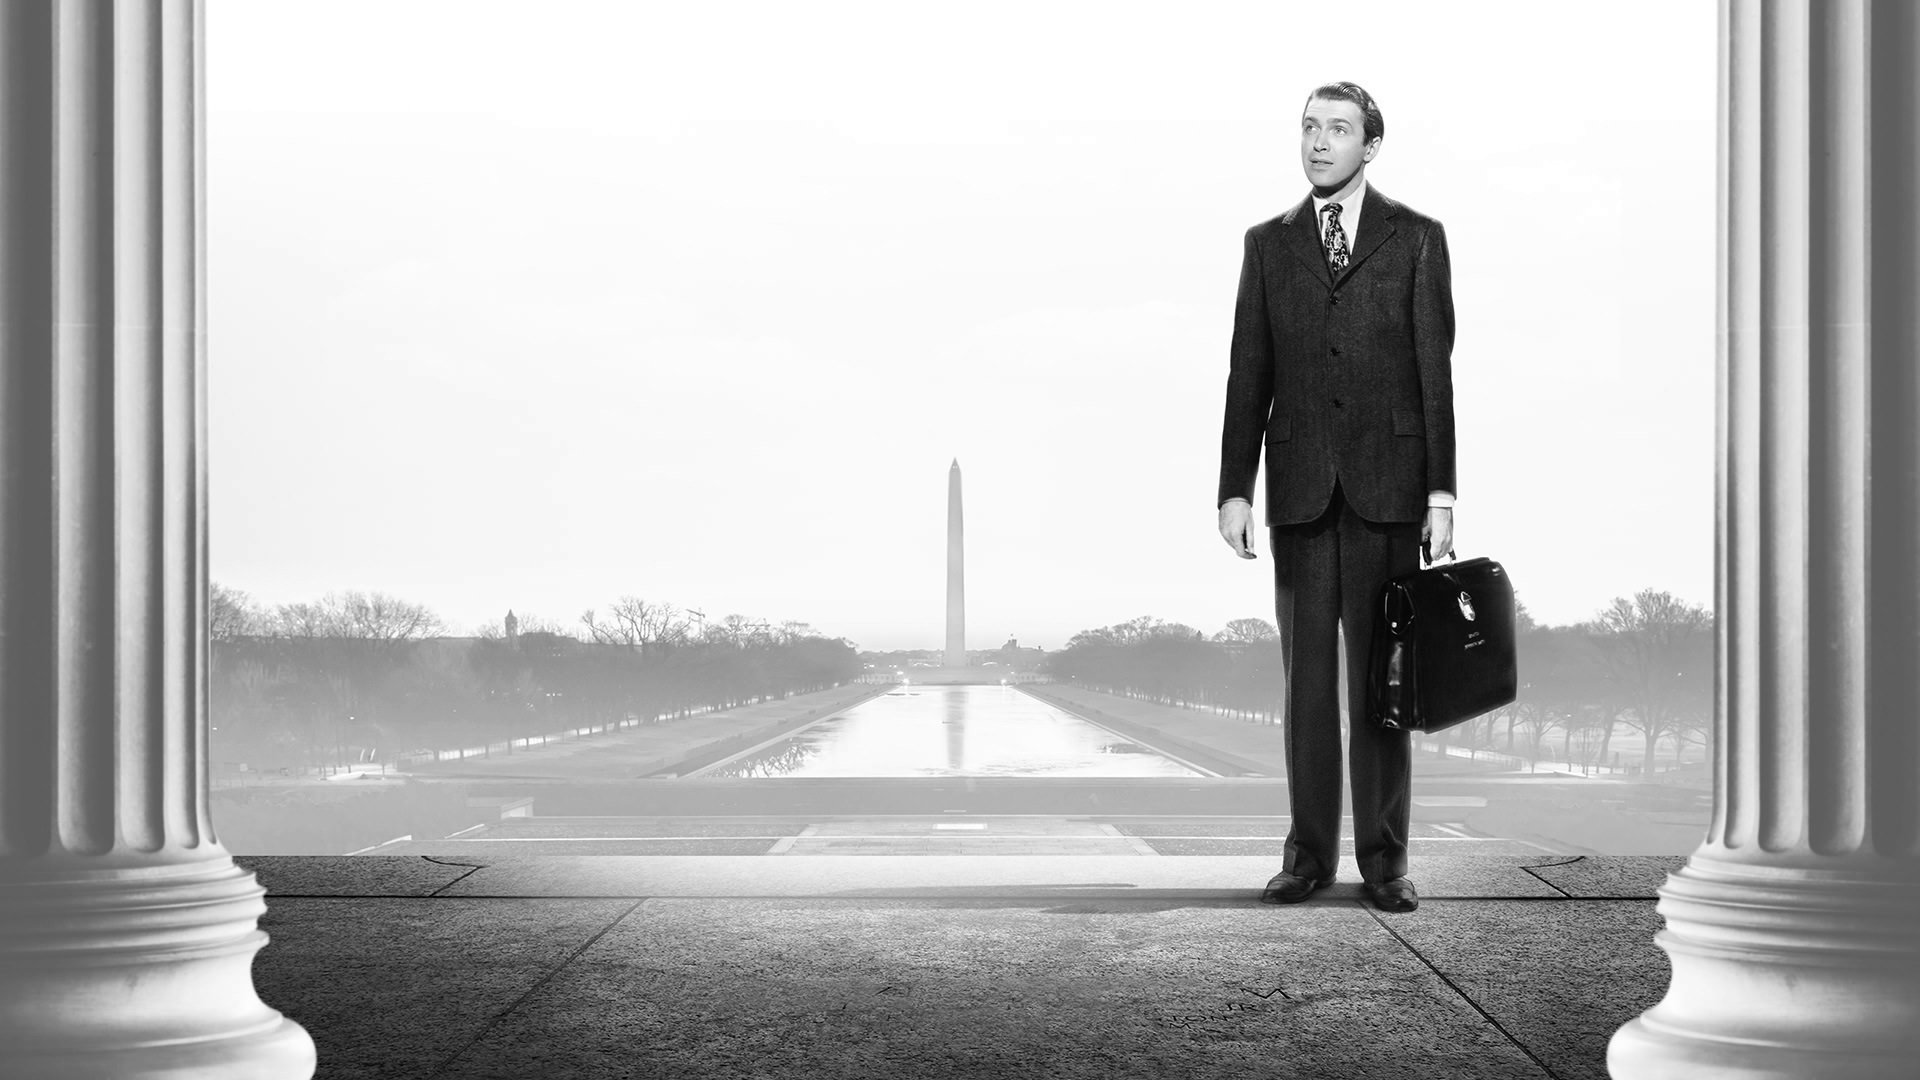 mr smith goes to washington has become synonymous the  jimmy stewart in mr smith goes to washington